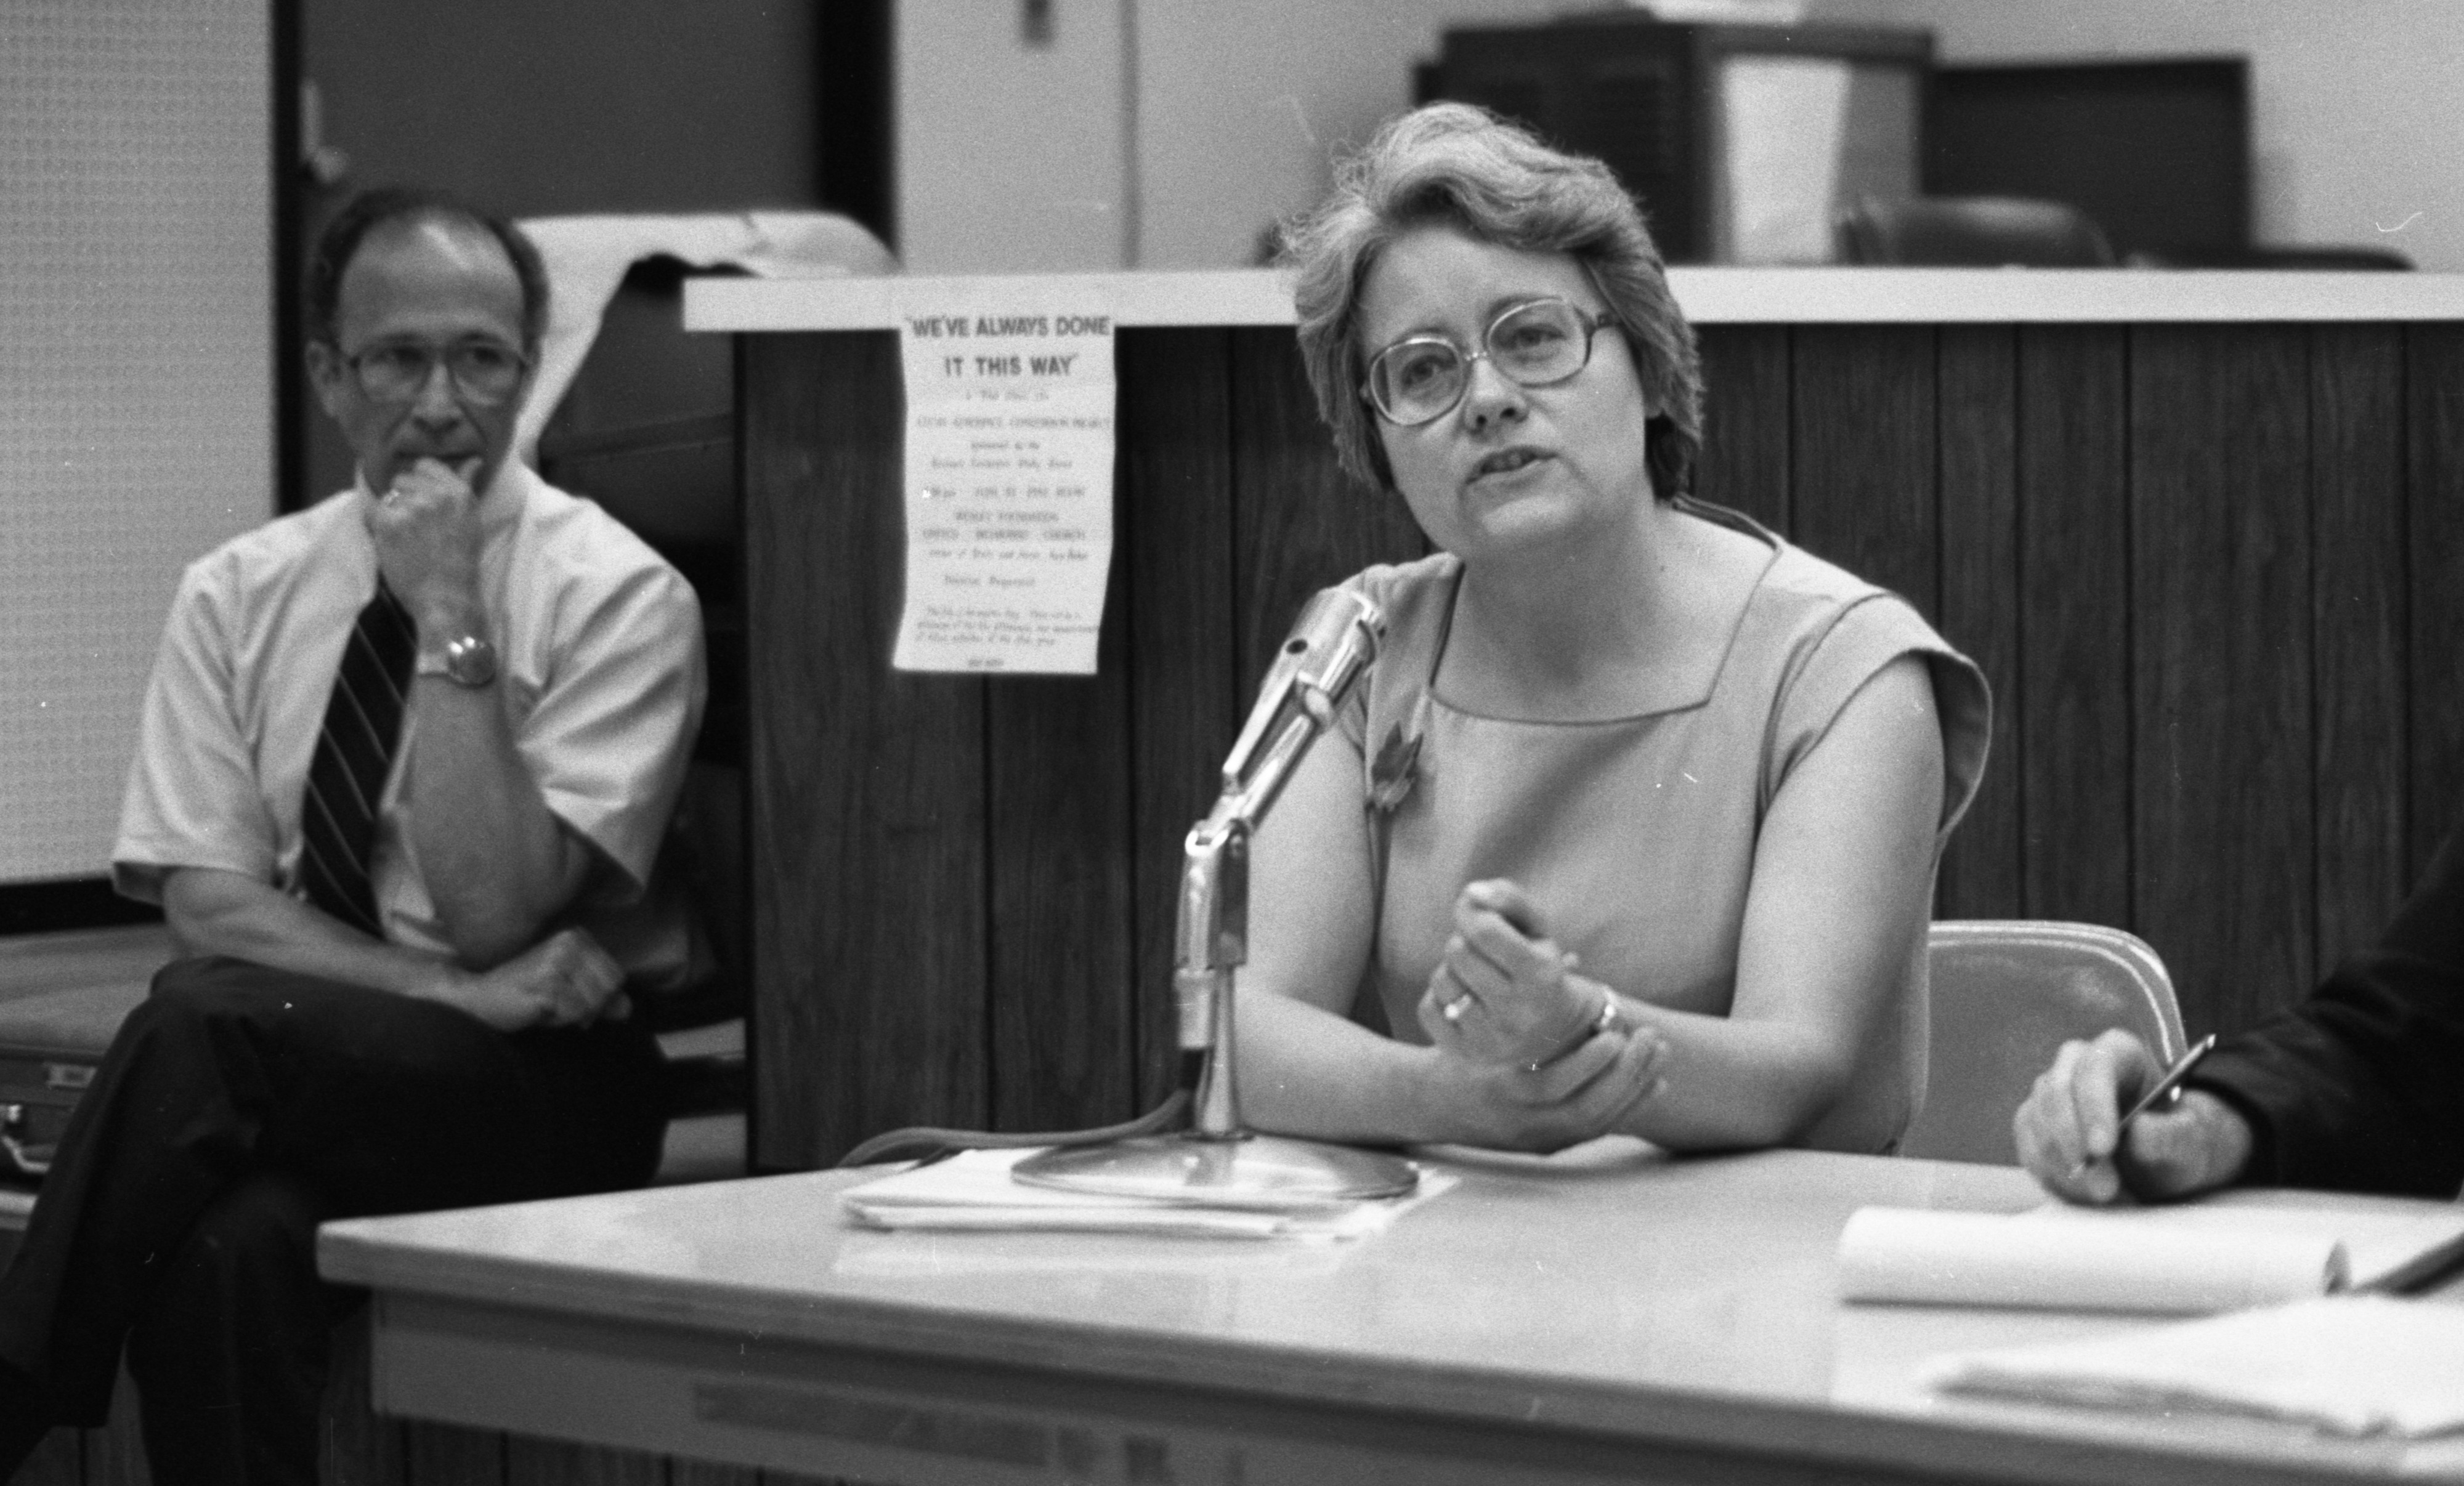 Karen A. Dolby Discusses Proposed Civil Defense Plan at Ann Arbor Public Library, June 1982 image